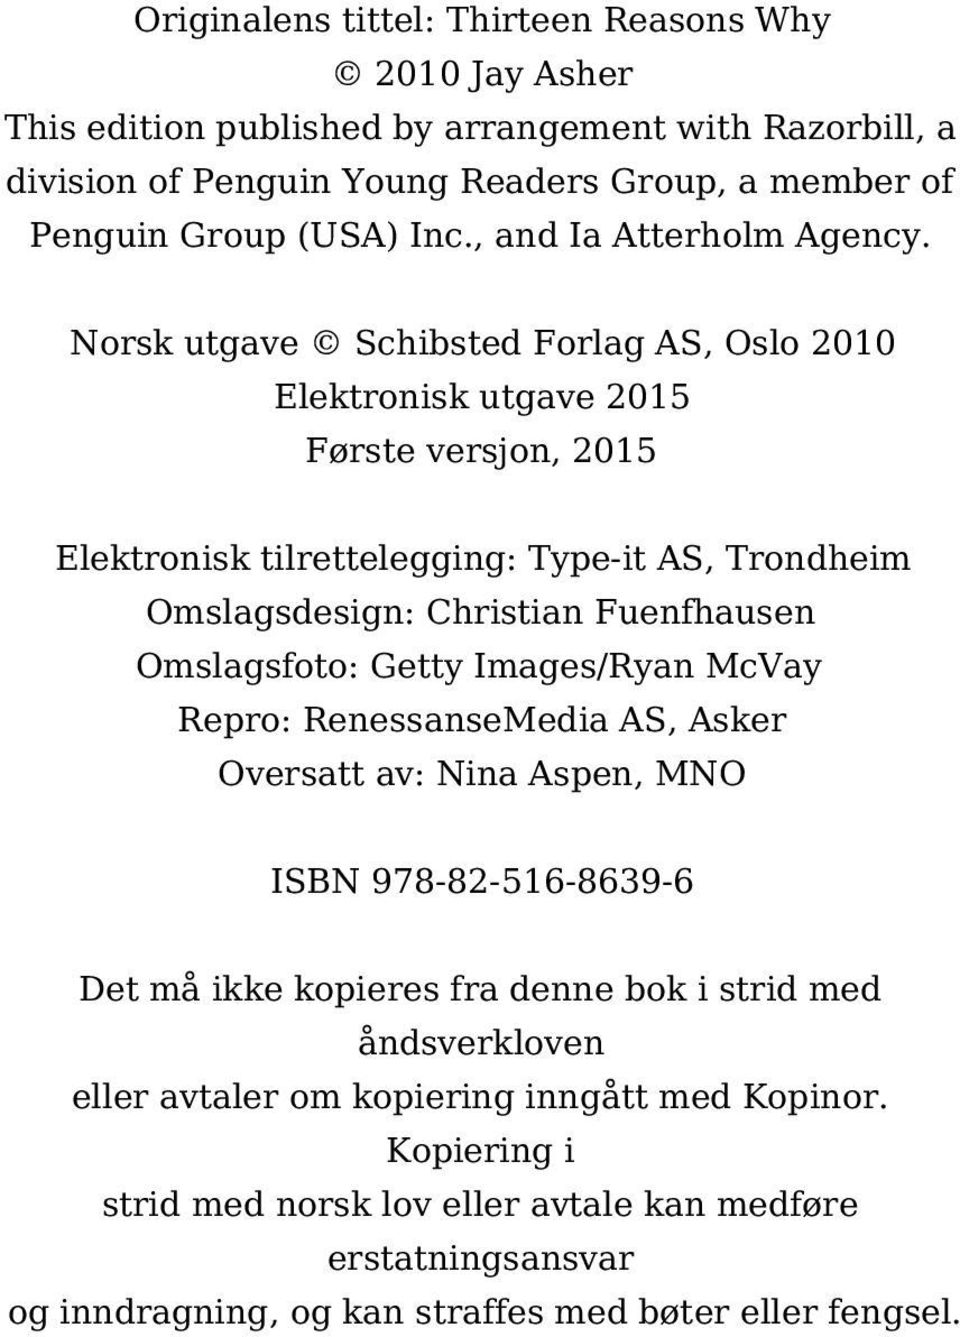 Norsk utgave Schibsted Forlag AS, Oslo 2010 Elektronisk utgave 2015 Første versjon, 2015 Elektronisk tilrettelegging: Type-it AS, Trondheim Omslagsdesign: Christian Fuenfhausen